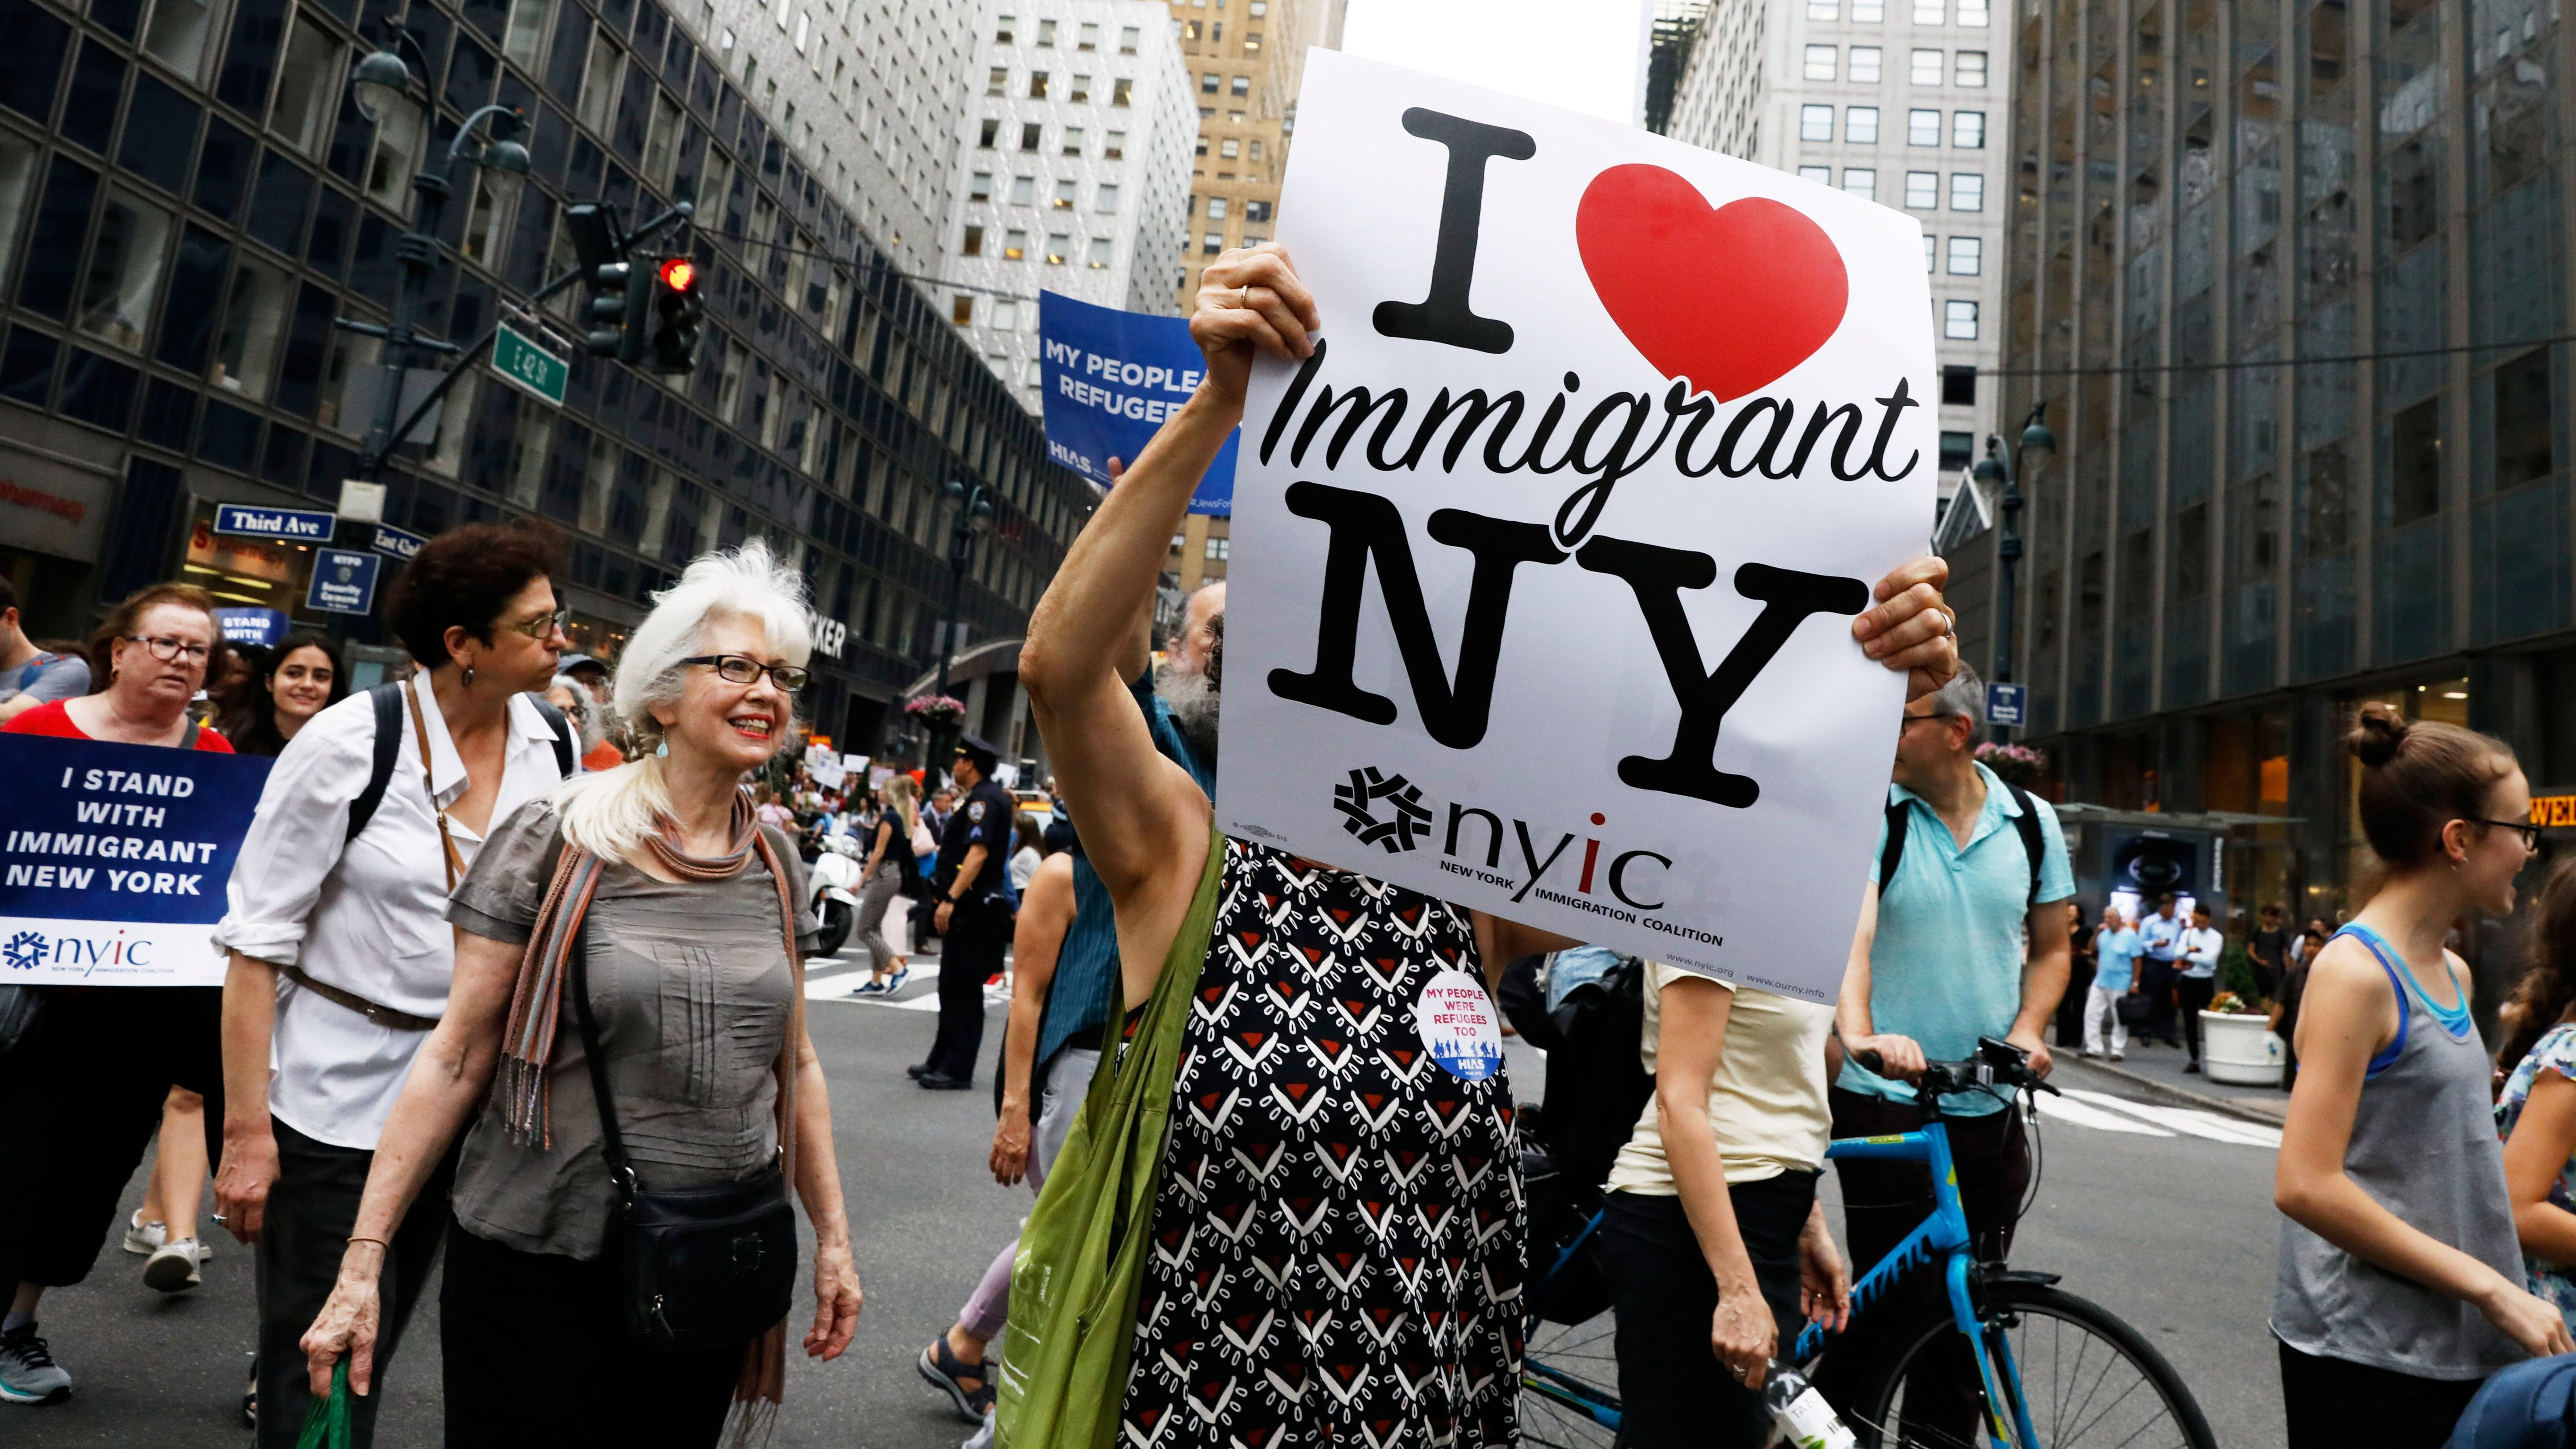 People march in protest against the Trump administration policy of separating immigrant families